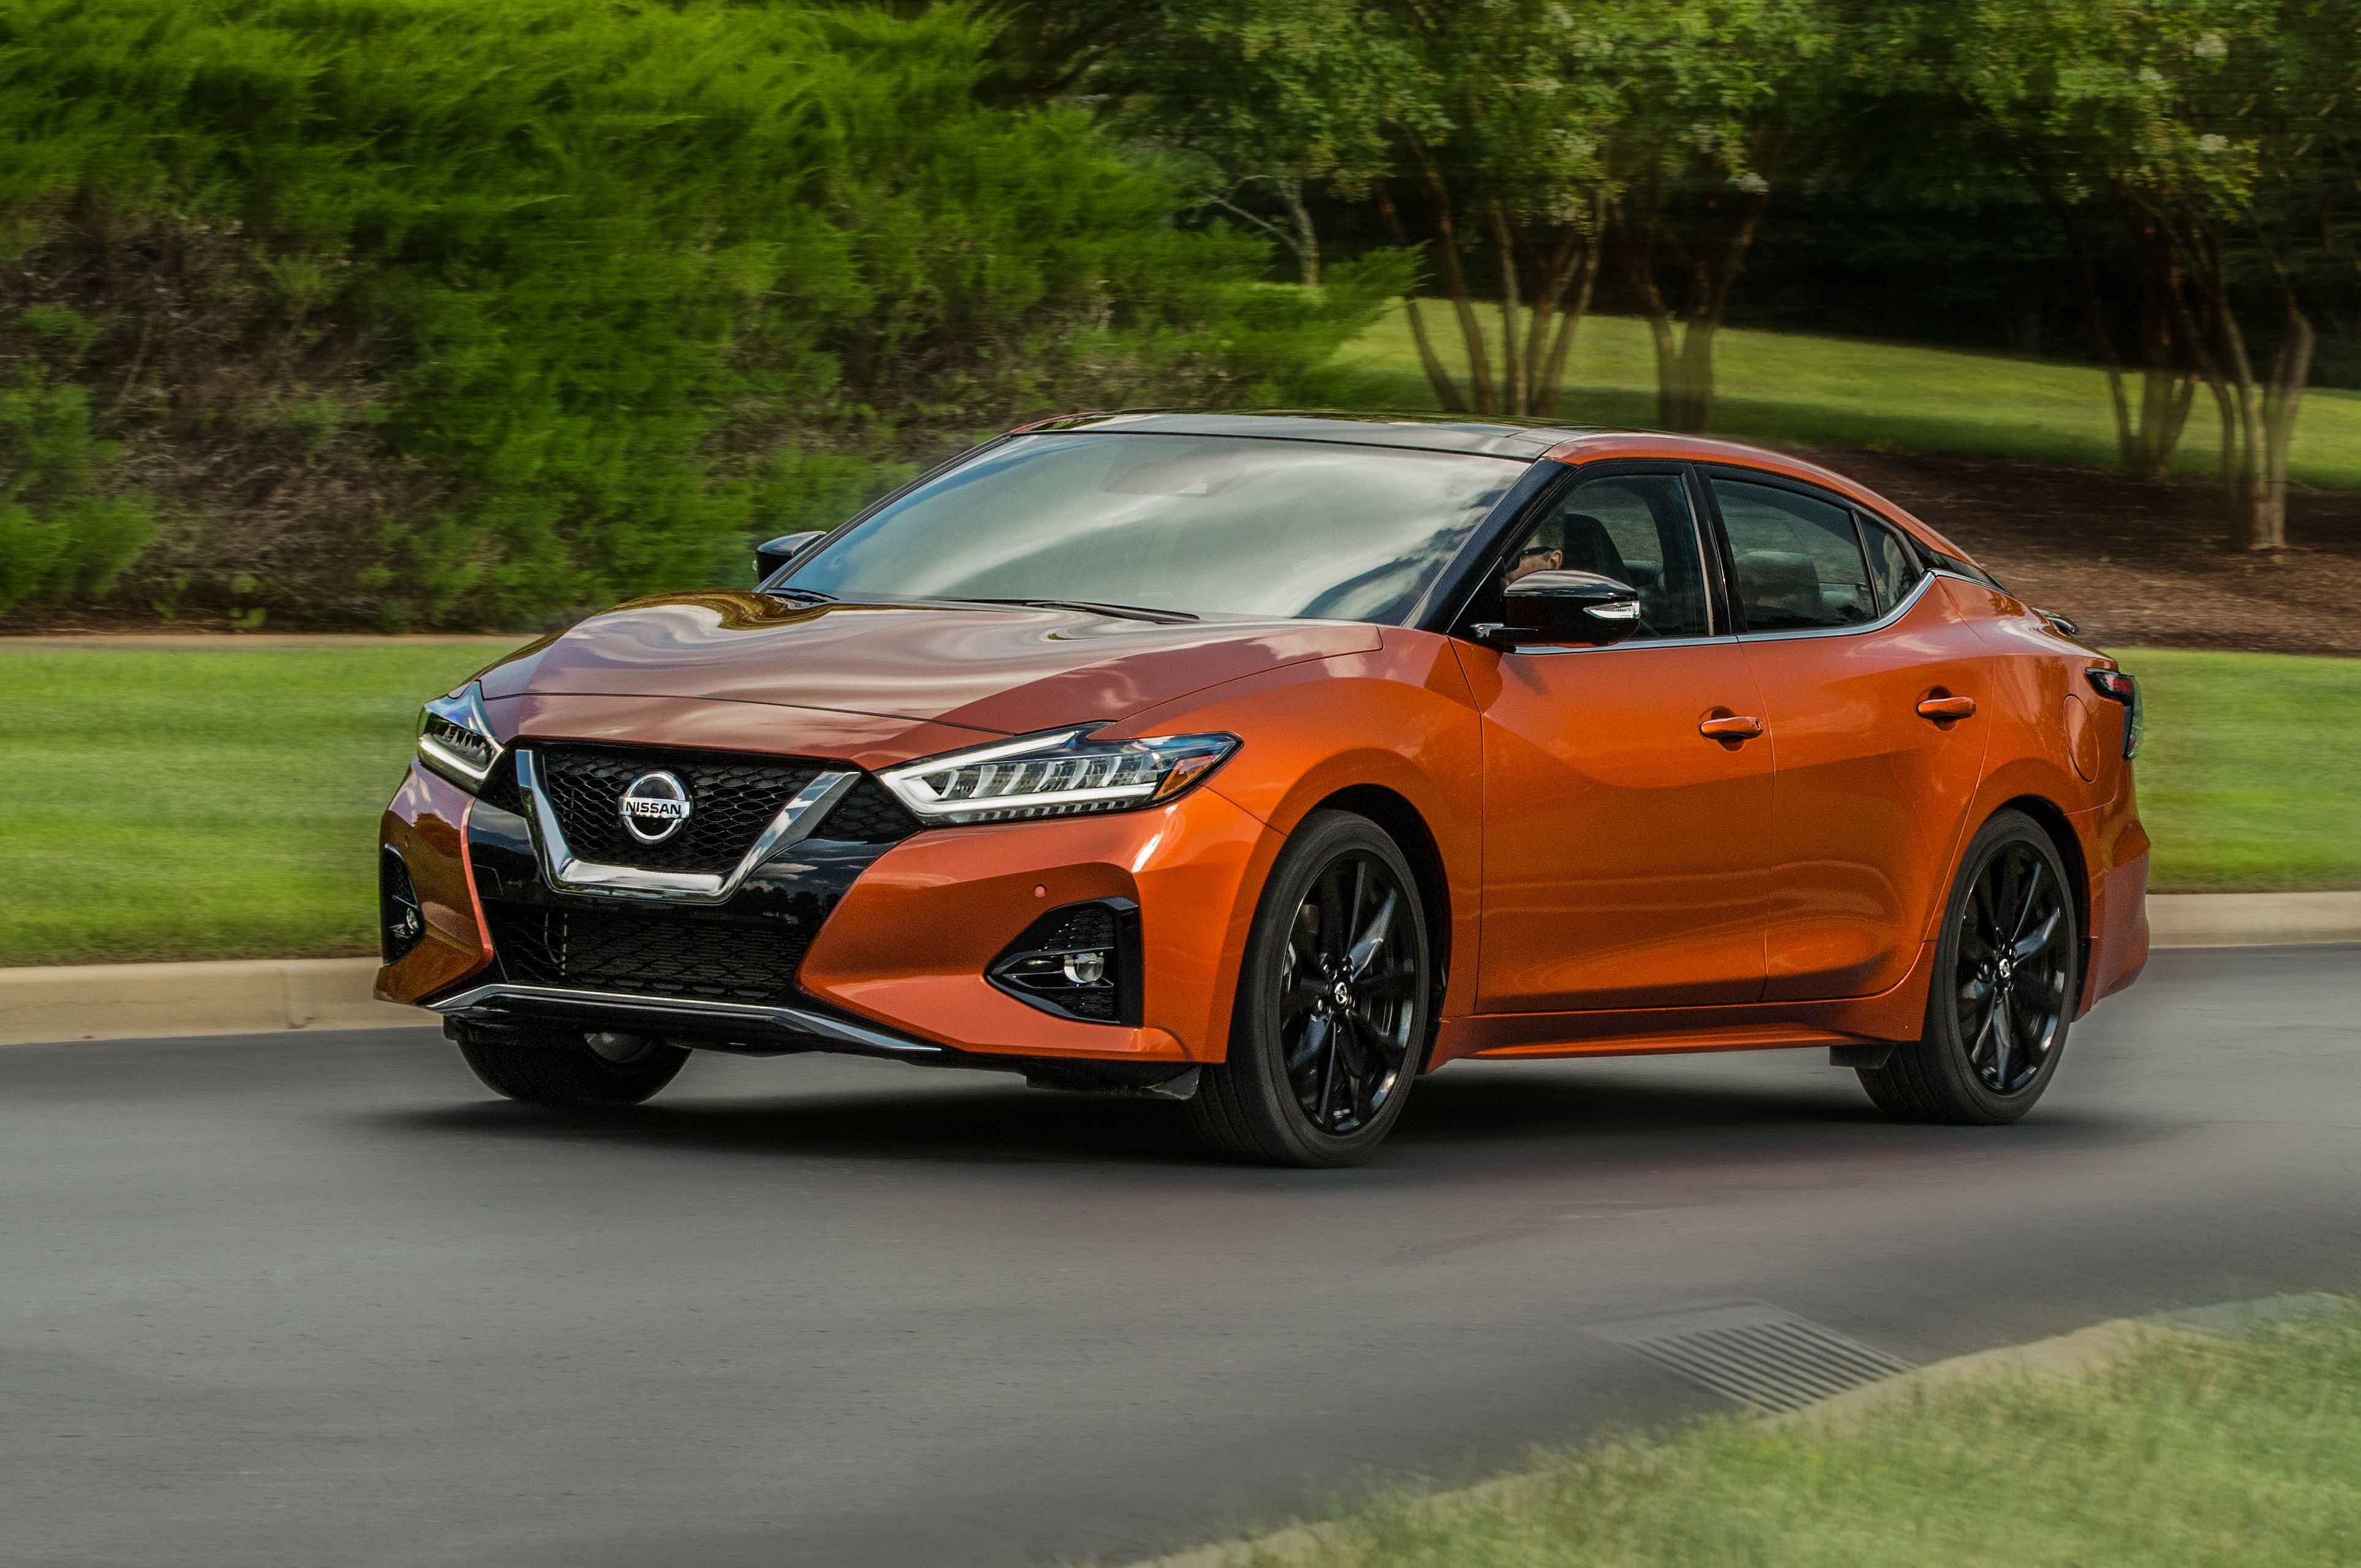 2020 Nissan Maxima Review Pricing And Specs